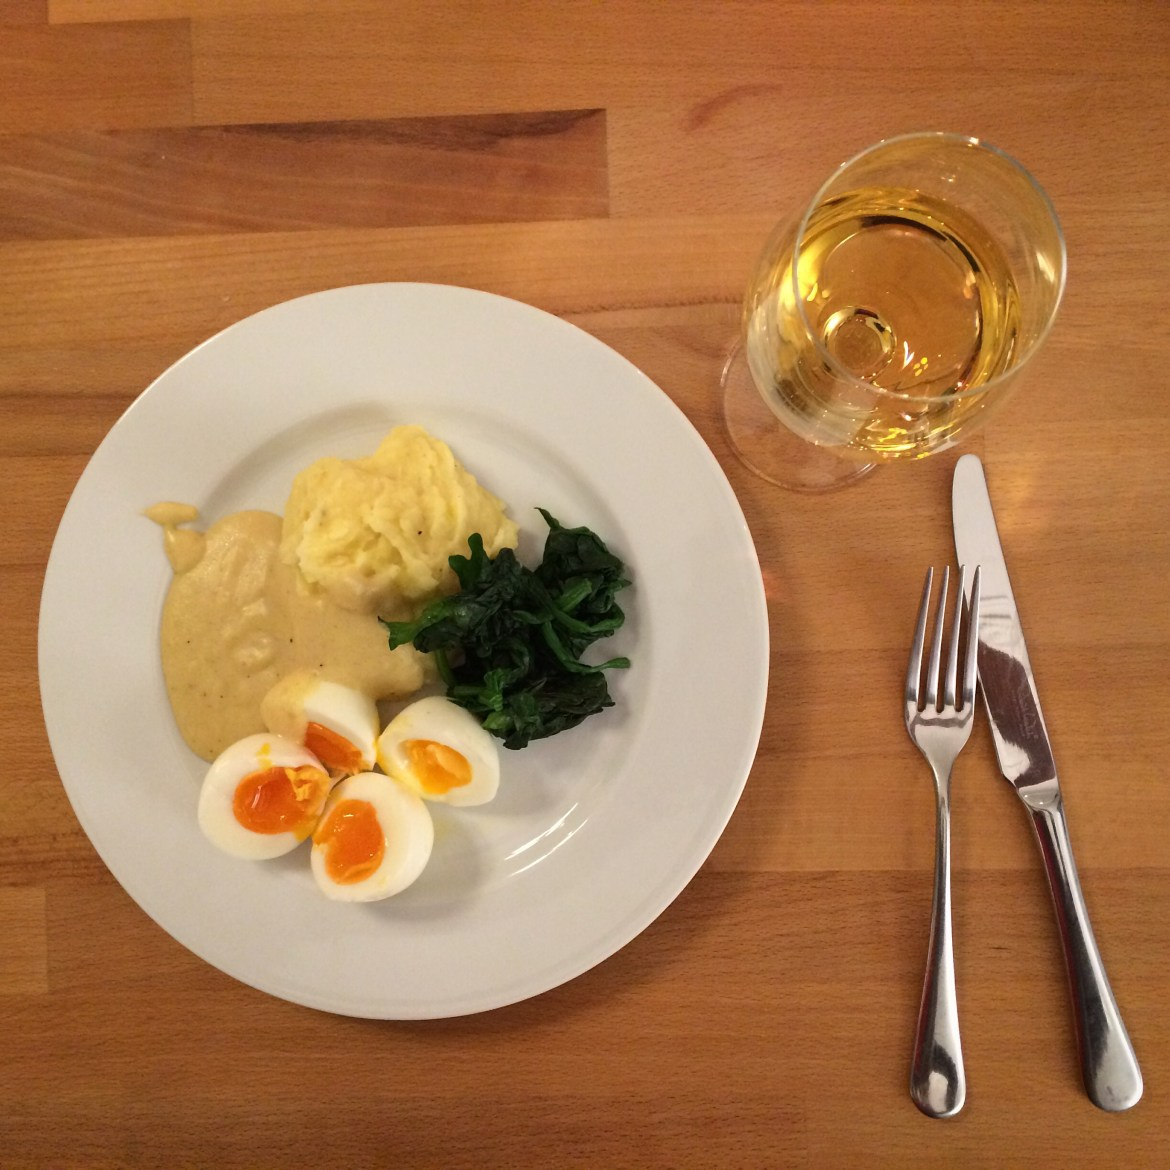 A plate of eggs with mashed potatoes, mustard sauce, wilted spinach and a glass of wine